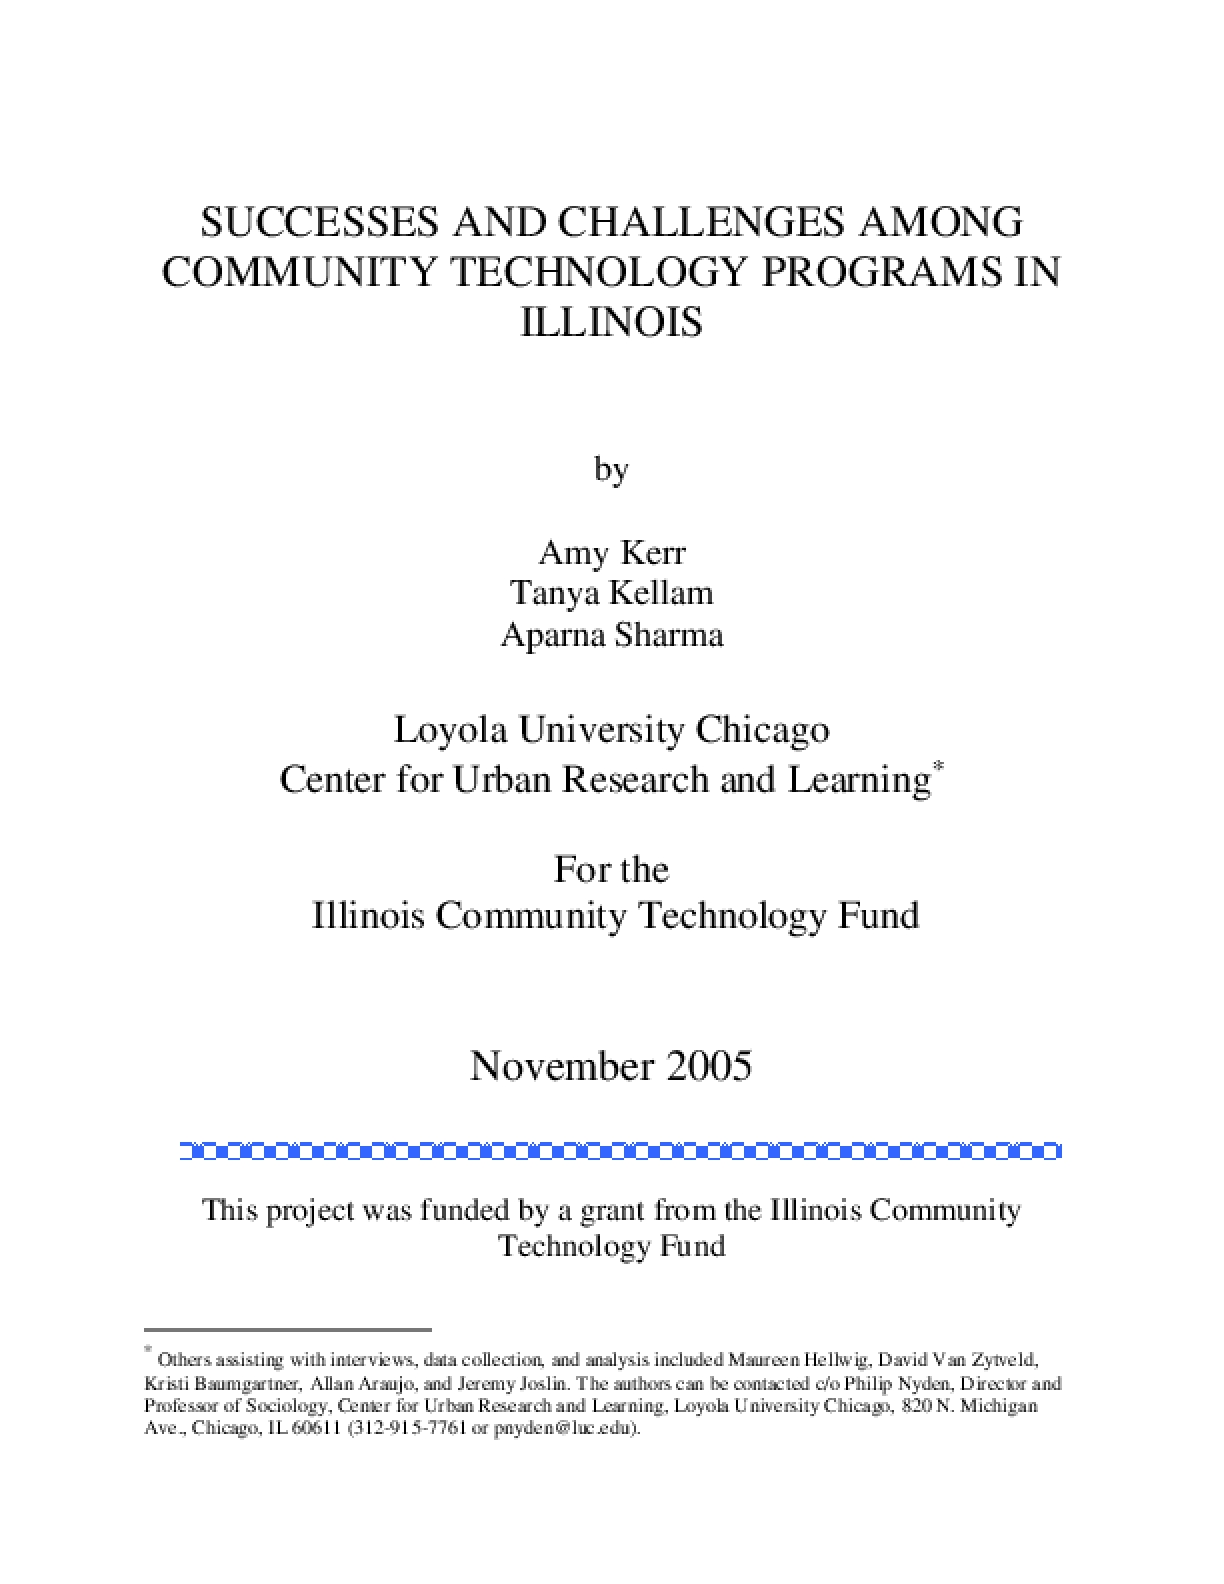 Success and Challenges Among Community Technology Programs in Illnois